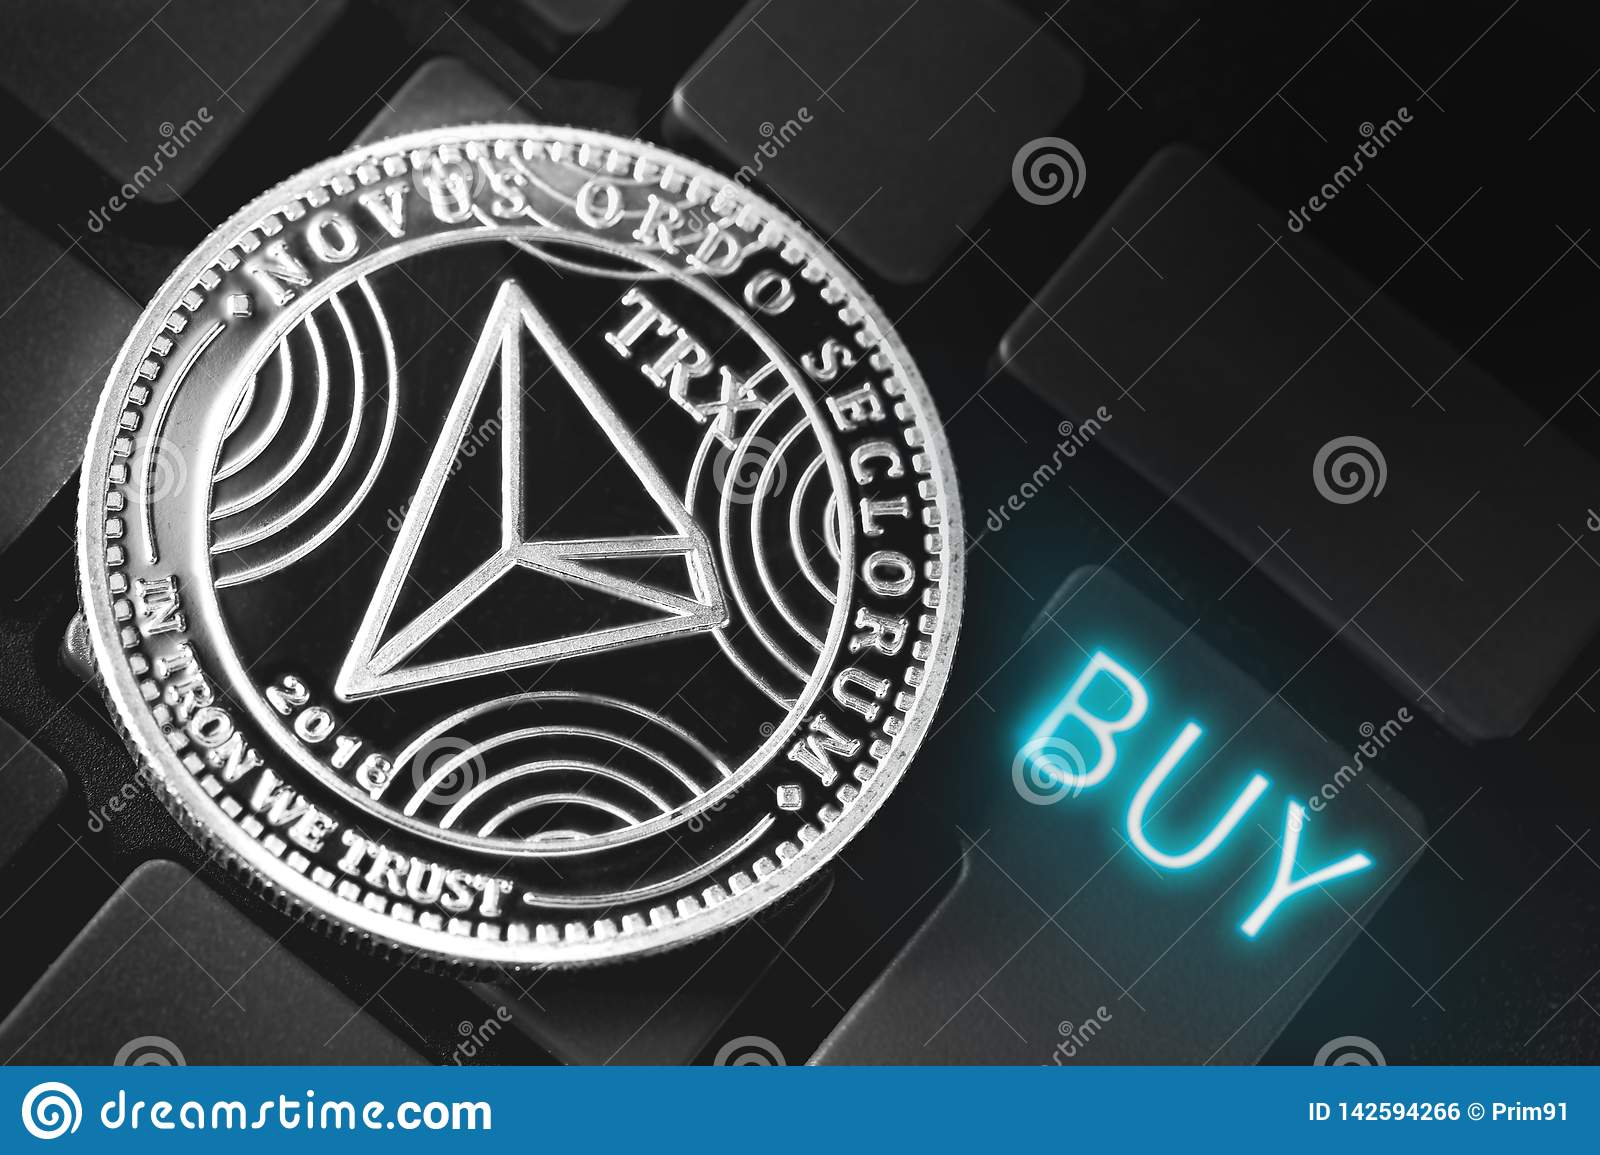 cryptocurrency tron buy